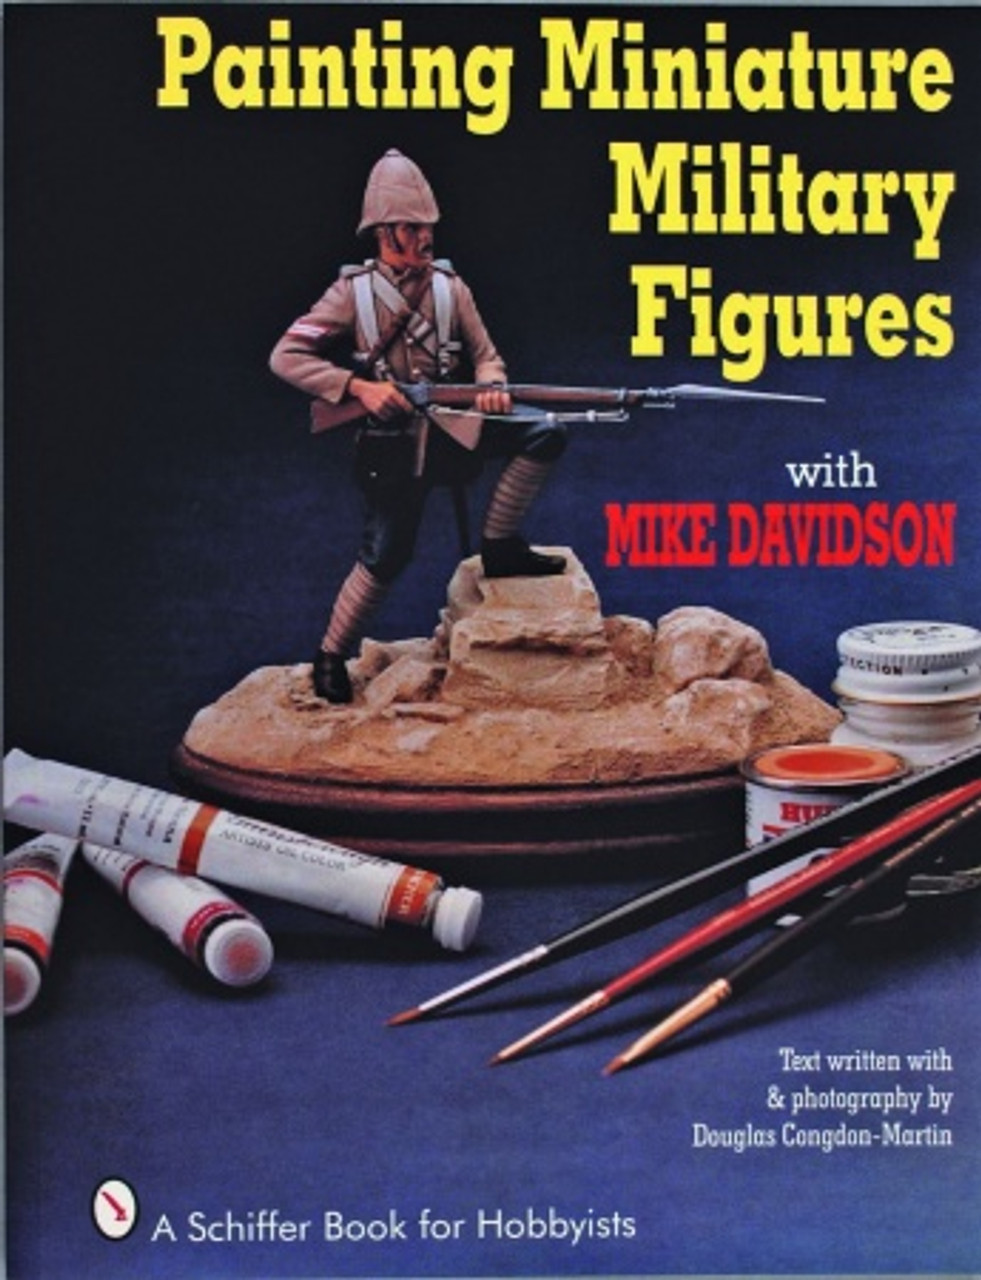 Painting Miniature Military Figures showing a soldier standing on a rock with his gun propped on his knee.